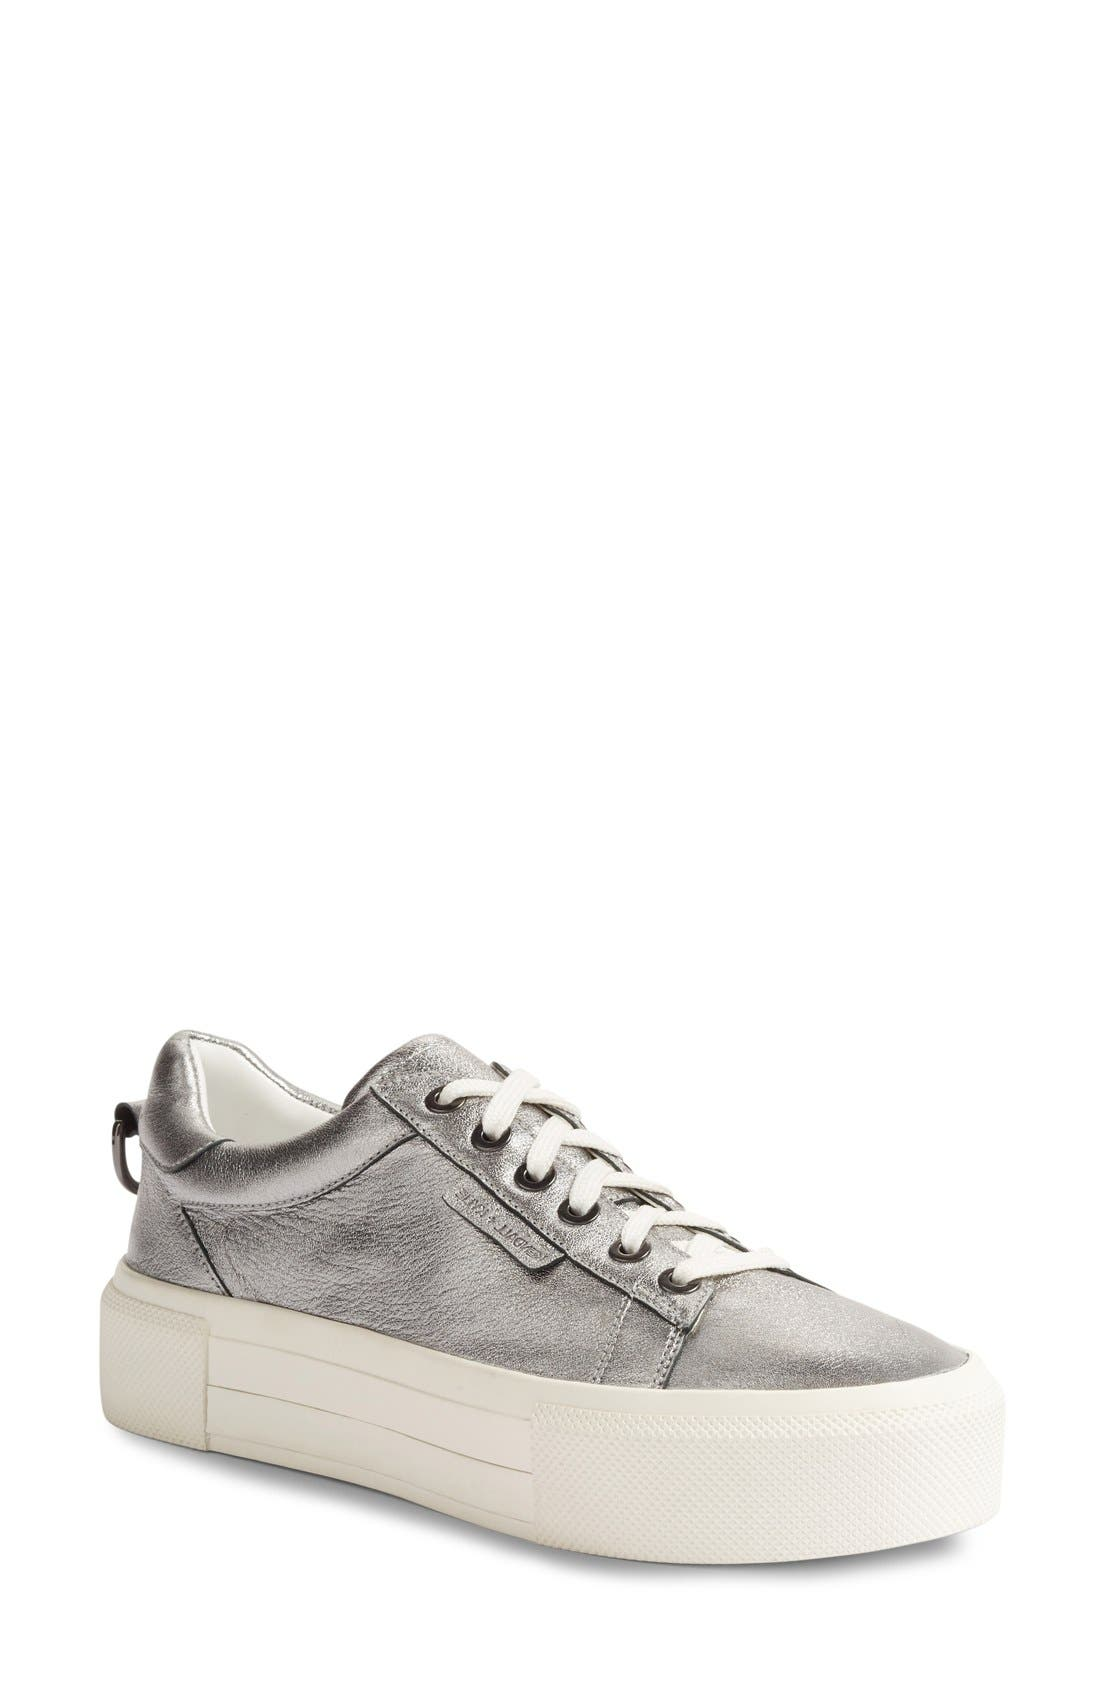 Alternate Image 1 Selected - KENDALL + KYLIE Tyler Platform Sneaker (Women)